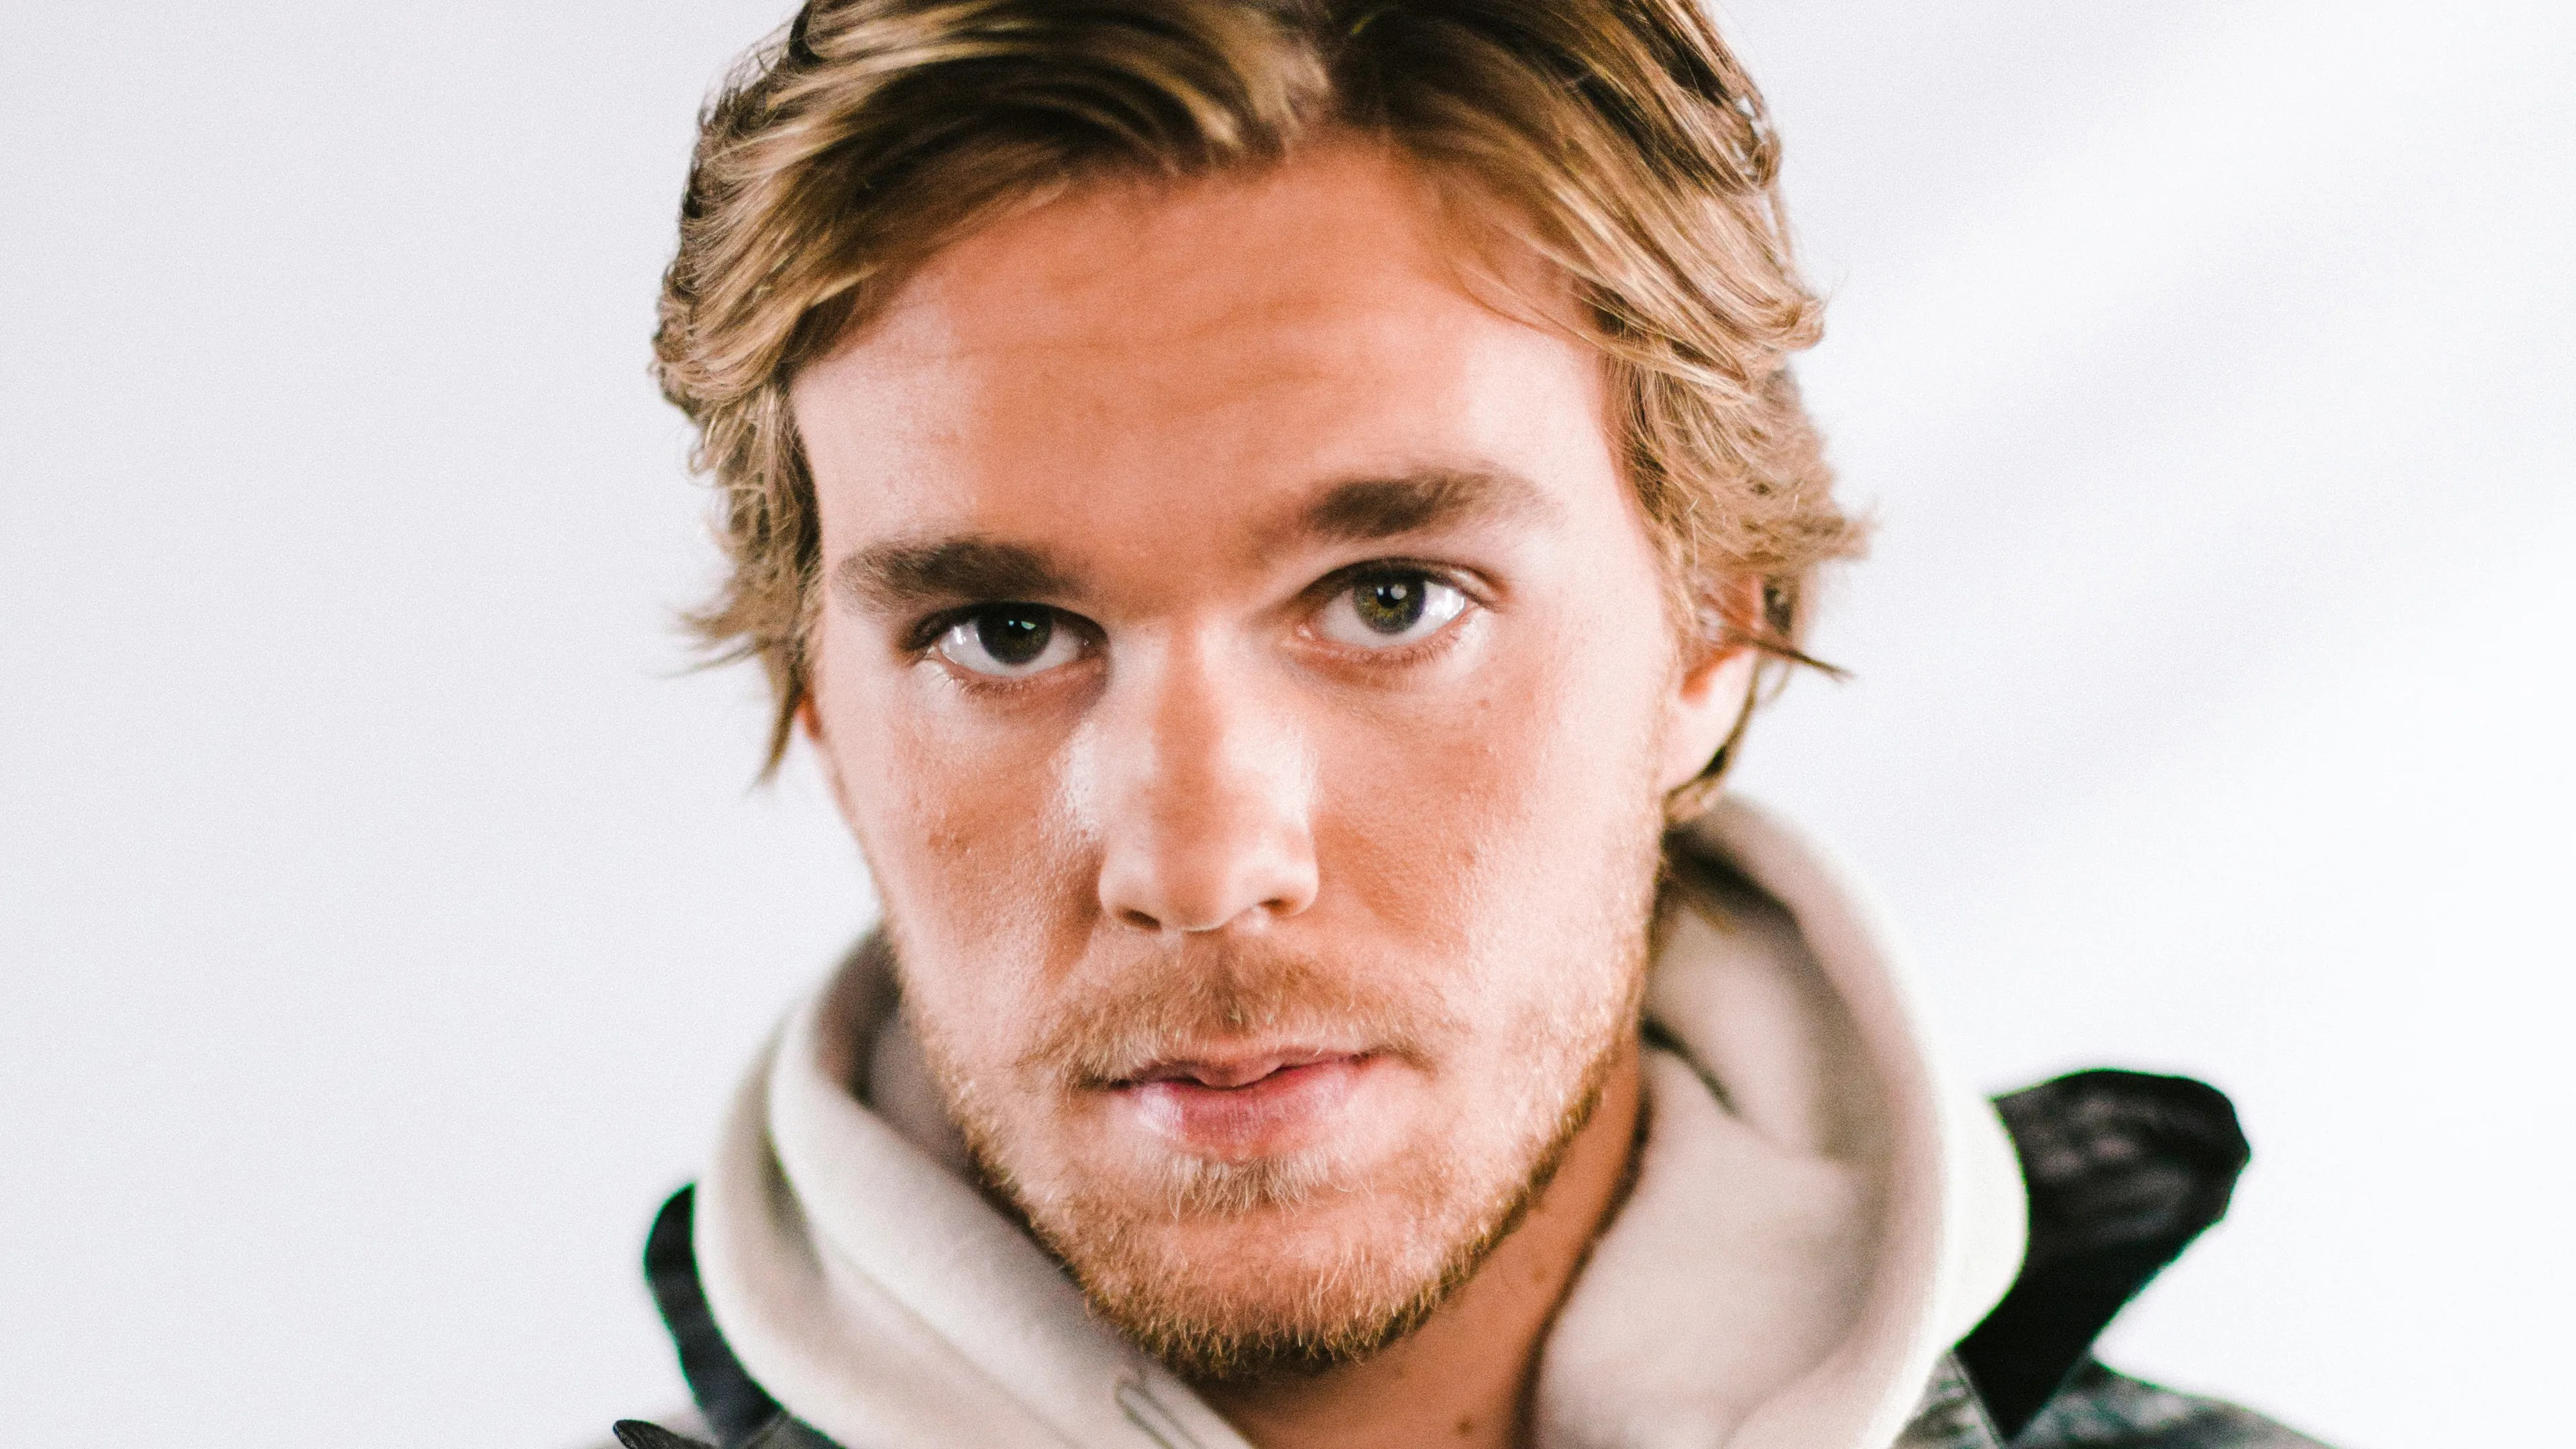 Connor McDavid Is Done Being Chirped At GQ